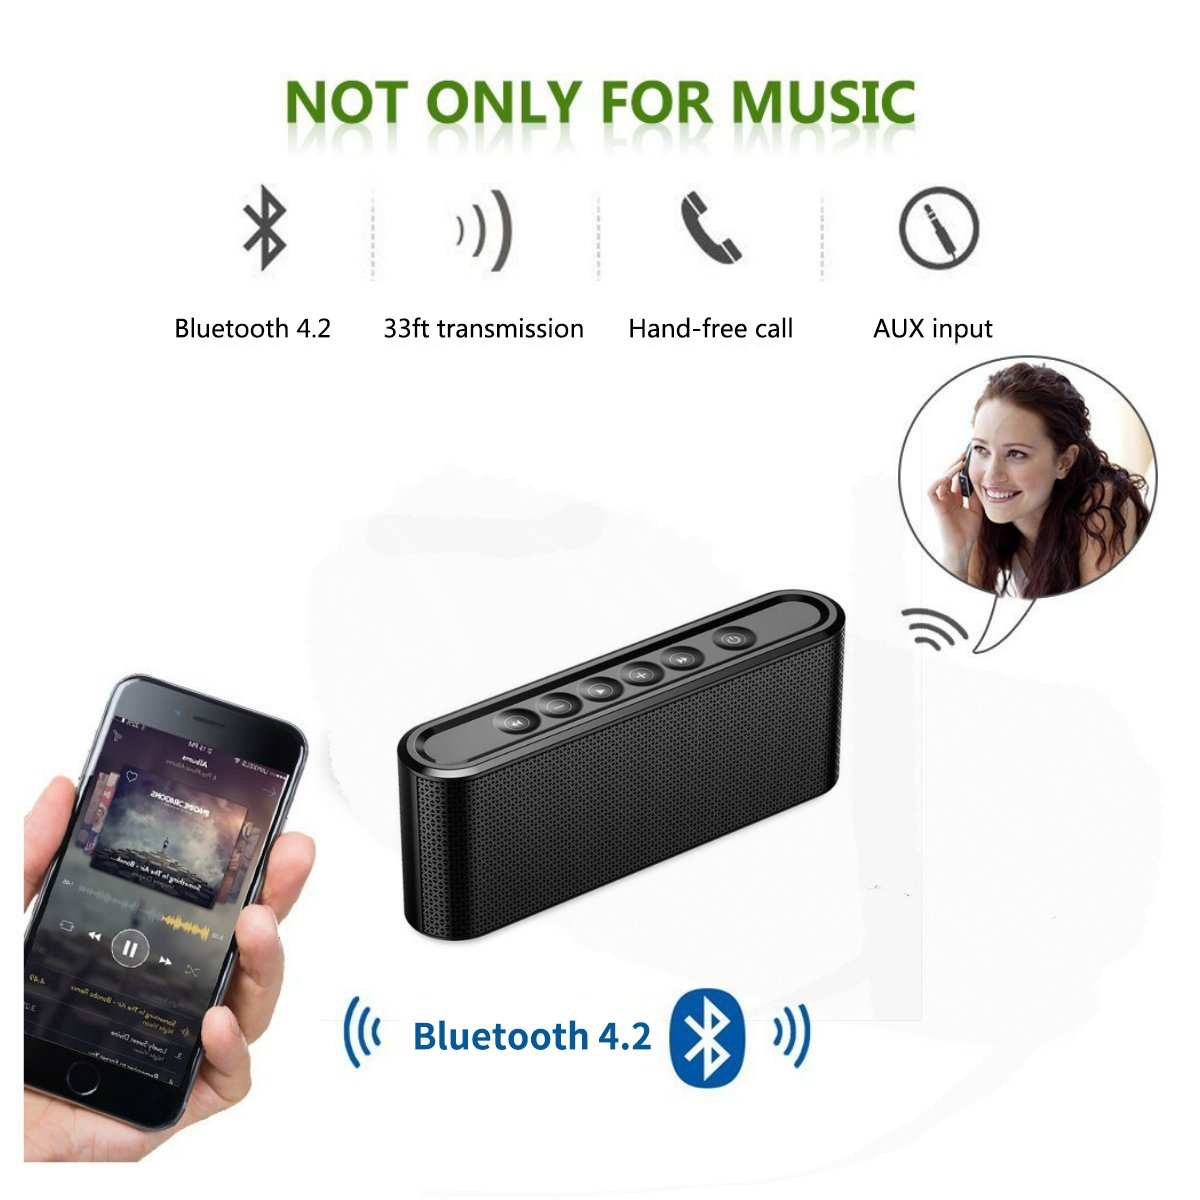 Bluetooth Speakers, 6W Touch Metal Speakers, Mini Portable Bluetooth 4.2 Wireless with Super Bass, Treble Stereo Subwoofer, Support TF Card, USB Disk, 3.5mm AUX Input,Mobile Computer Accessories by WORENMI (Image #7)